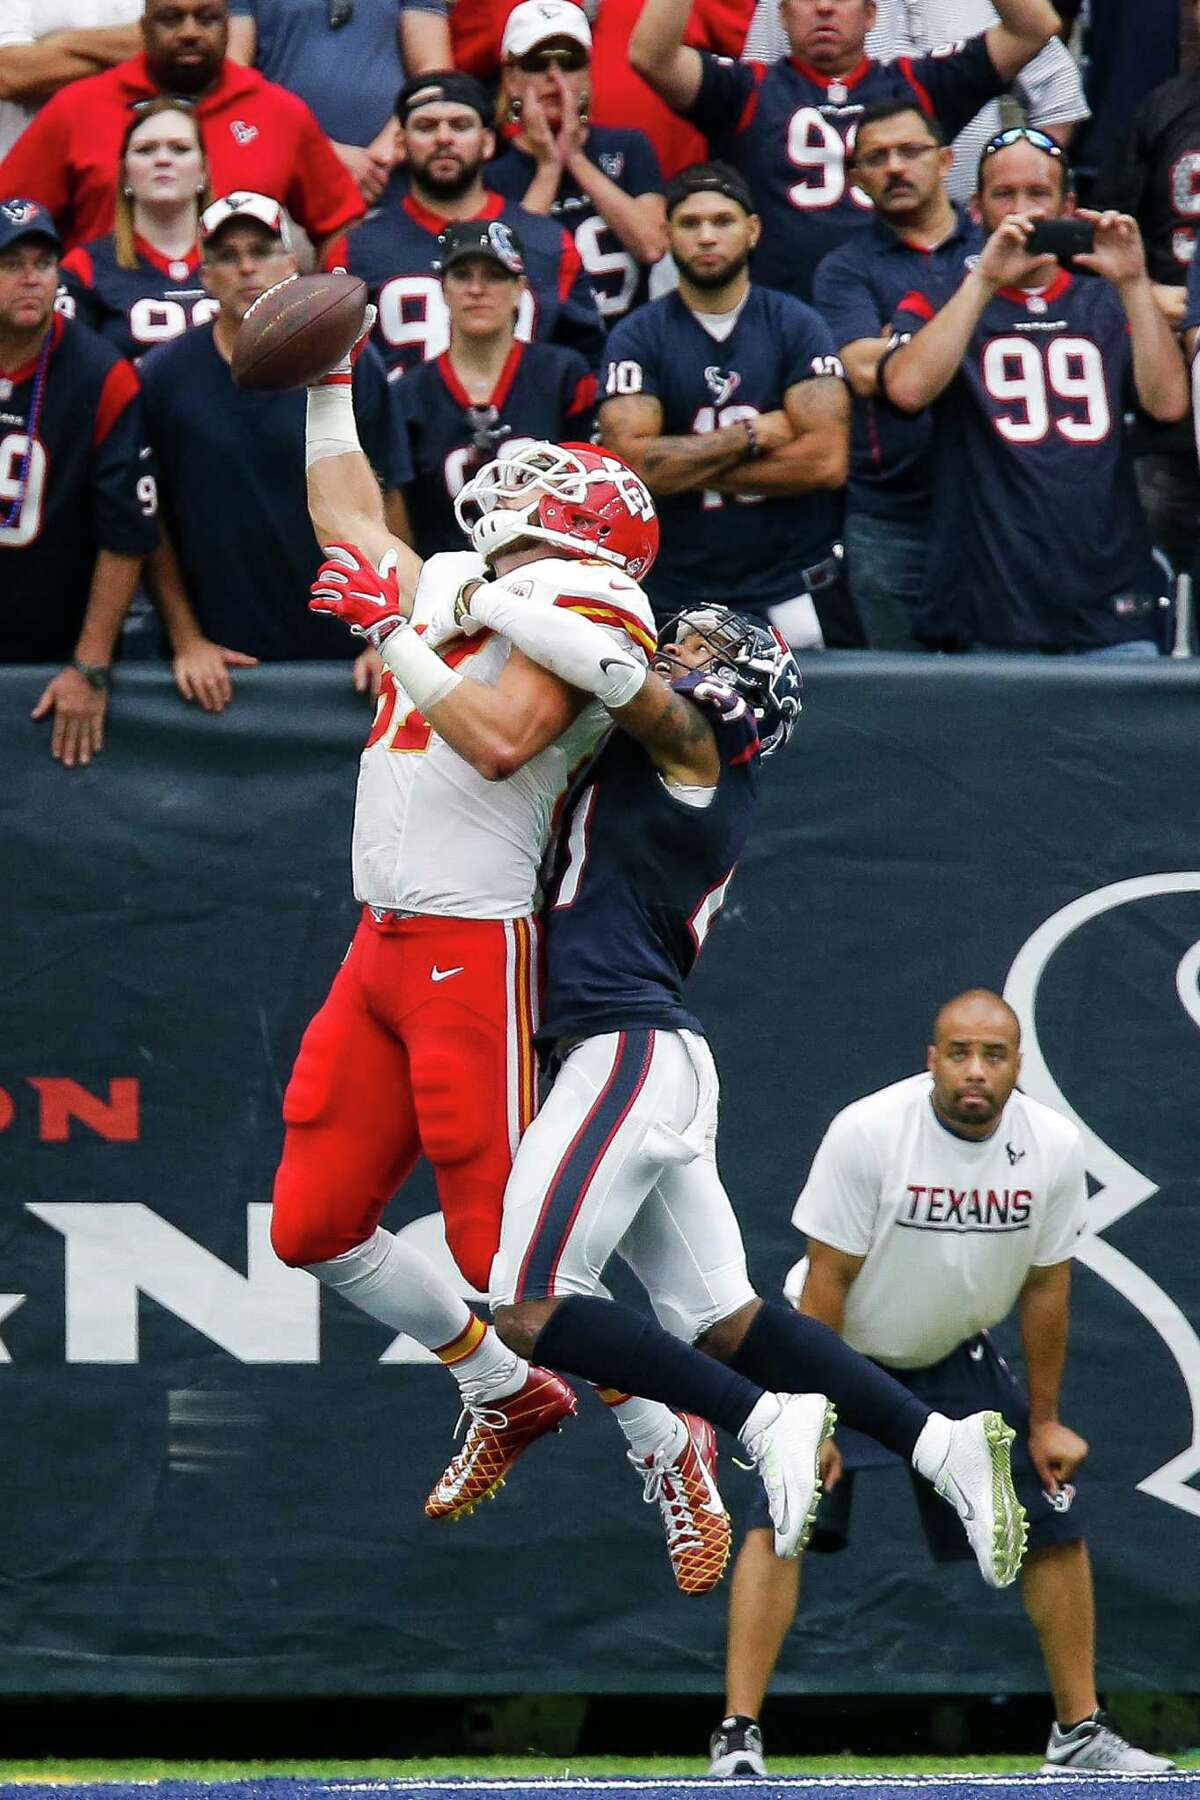 Houston Texans cornerback A.J. Bouye (21) puts on the pressure as Kansas City Chiefs tight end Travis Kelce (87) misses a touchdown pass during the second half of an NFL game at NRG Stadium Sunday, Sept. 18, 2016 in Houston.